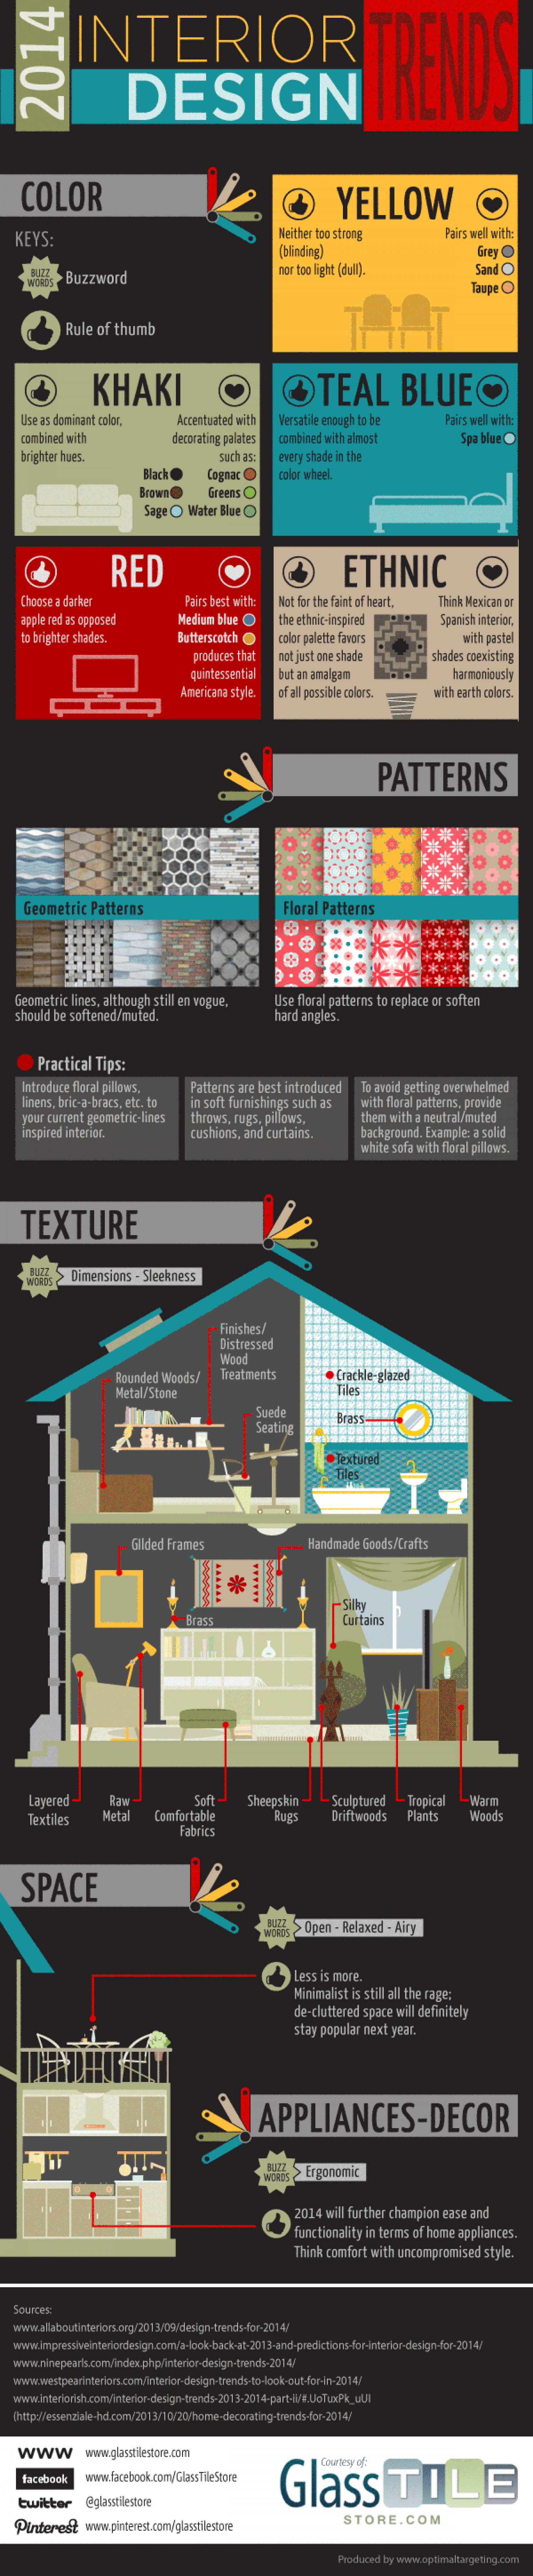 2014 Interior Design Trends Infographic